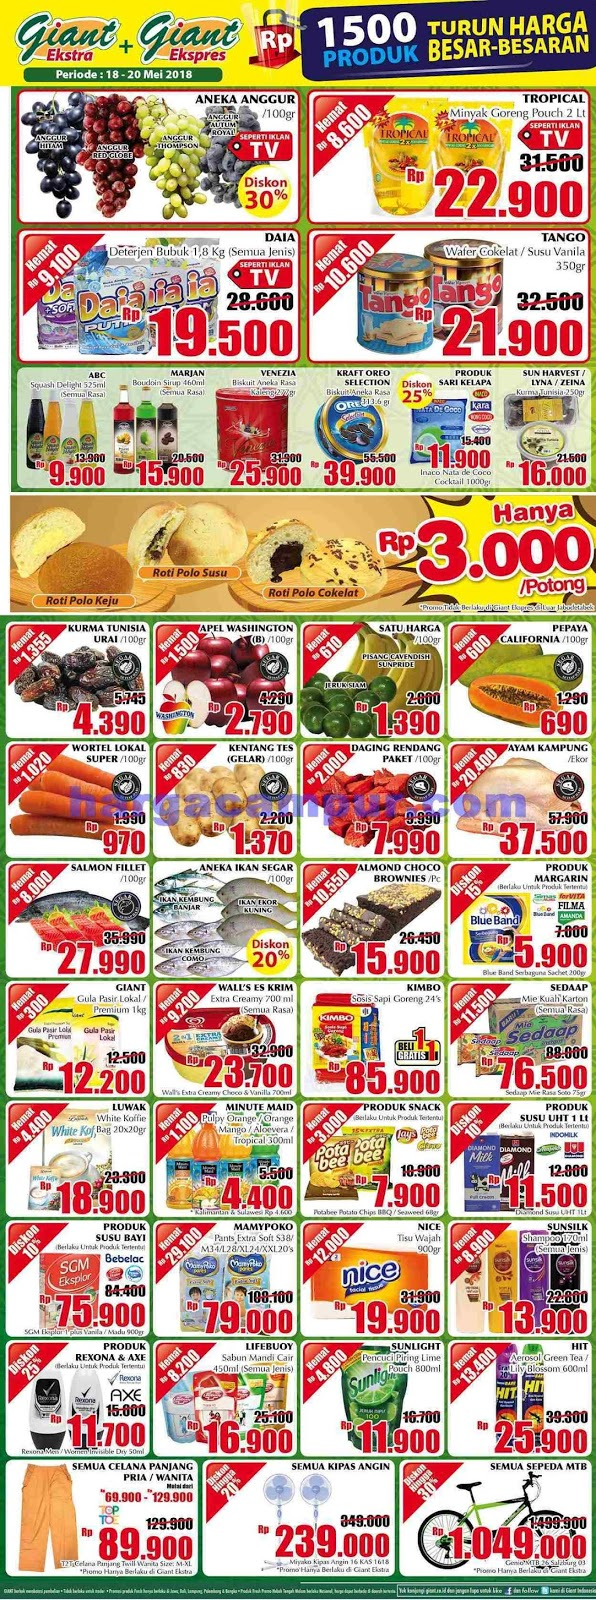 Promo JSM GIANT SUPERMARKET Weekend Terbaru 18 - 20 Mei 2018